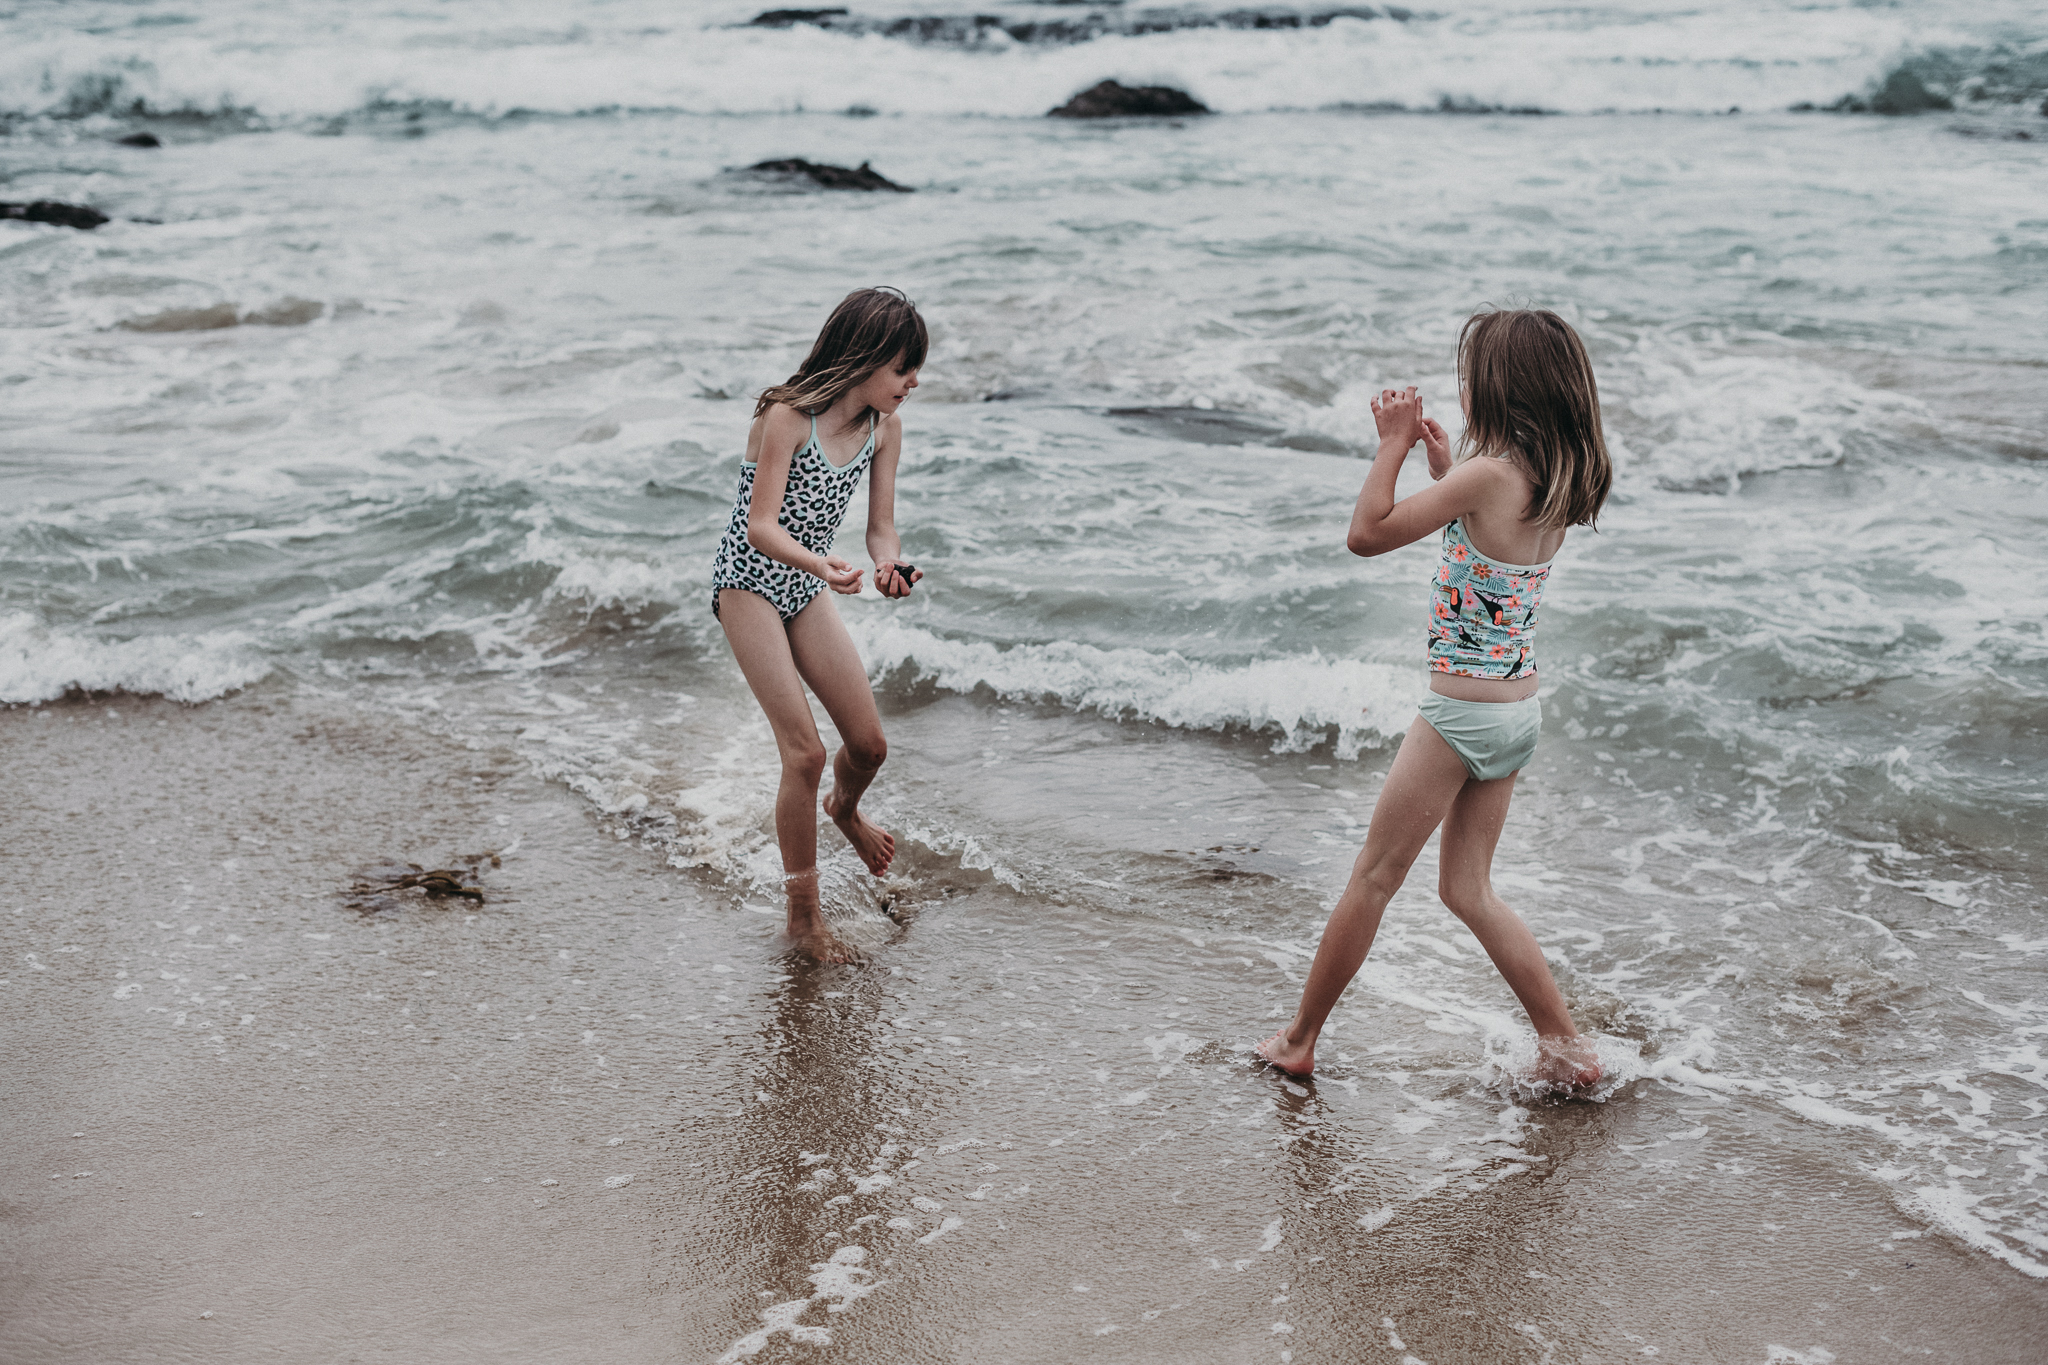 Young girls playing in shallow water